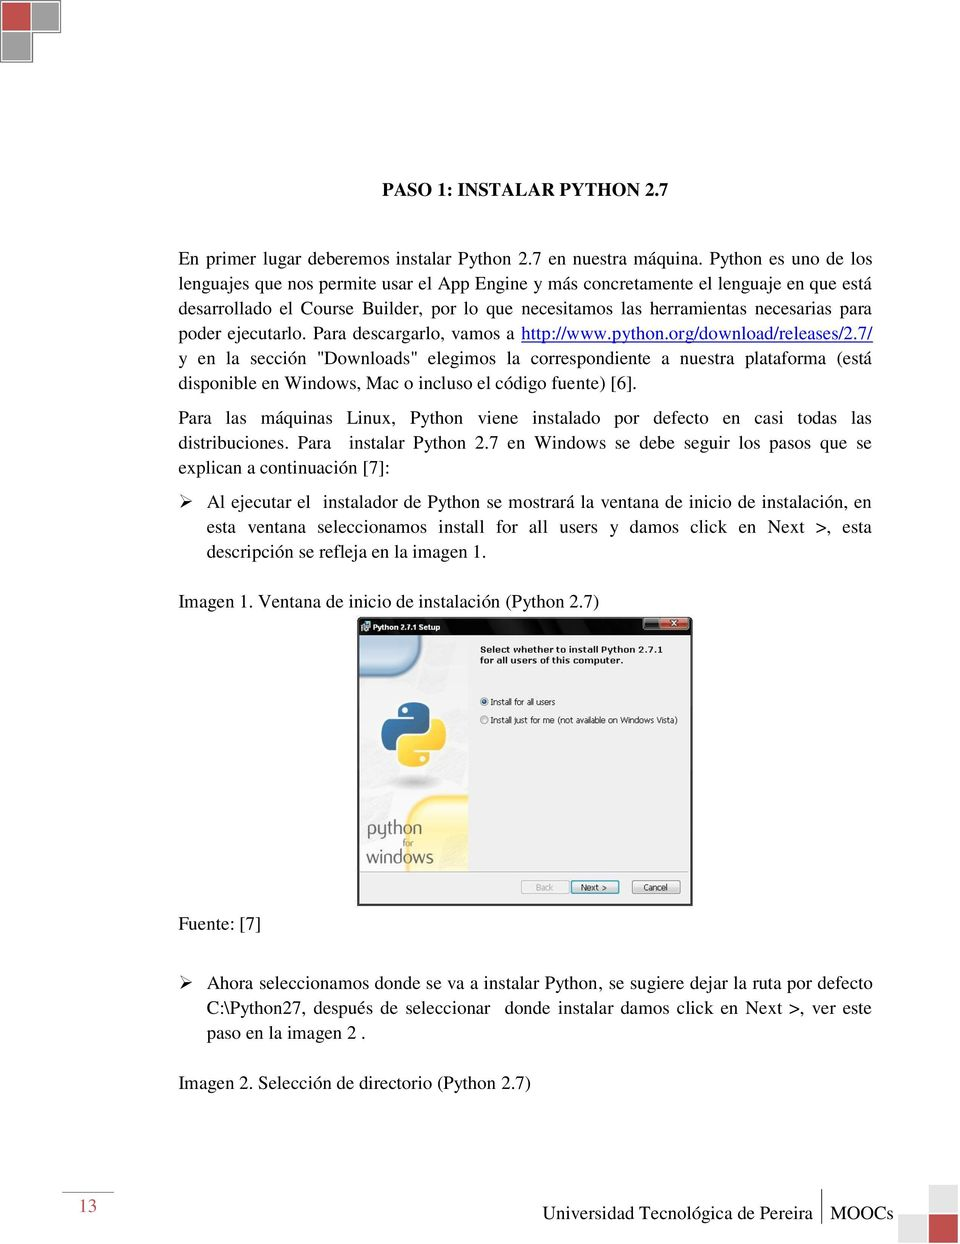 poder ejecutarlo. Para descargarlo, vamos a http://www.python.org/download/releases/2.